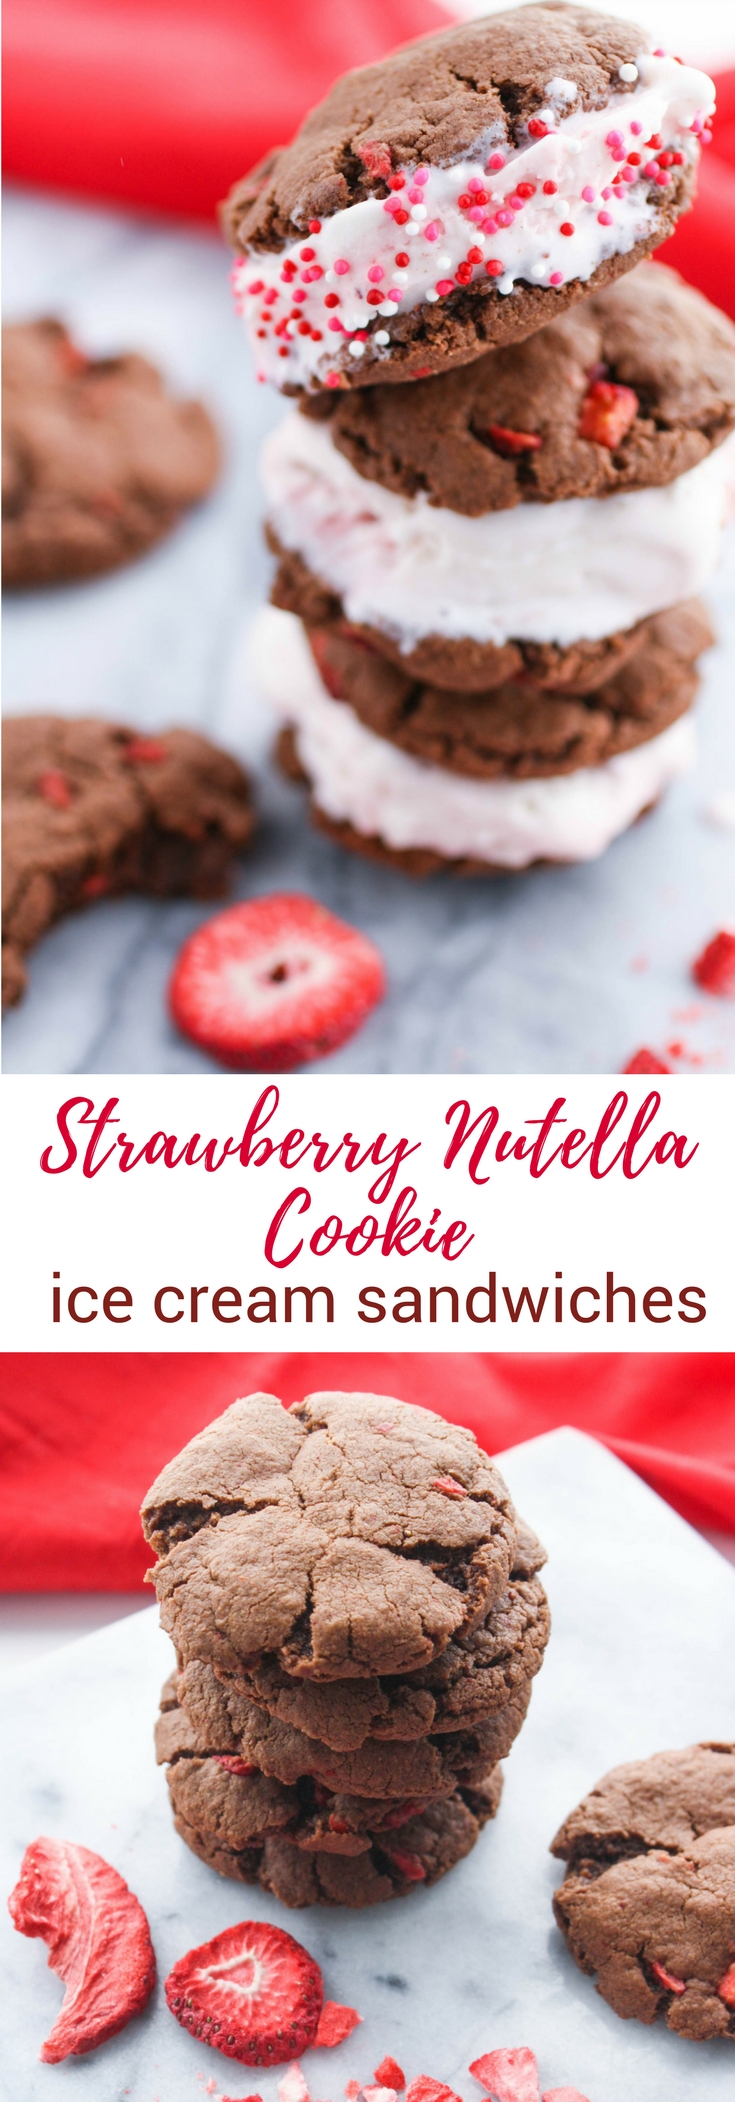 Strawberry-Nutella Cookie Ice Cream Sandwiches are a fun dessert any time of year. You'll love these Strawberry-Nutella Cookie Ice Cream Sandwiches!